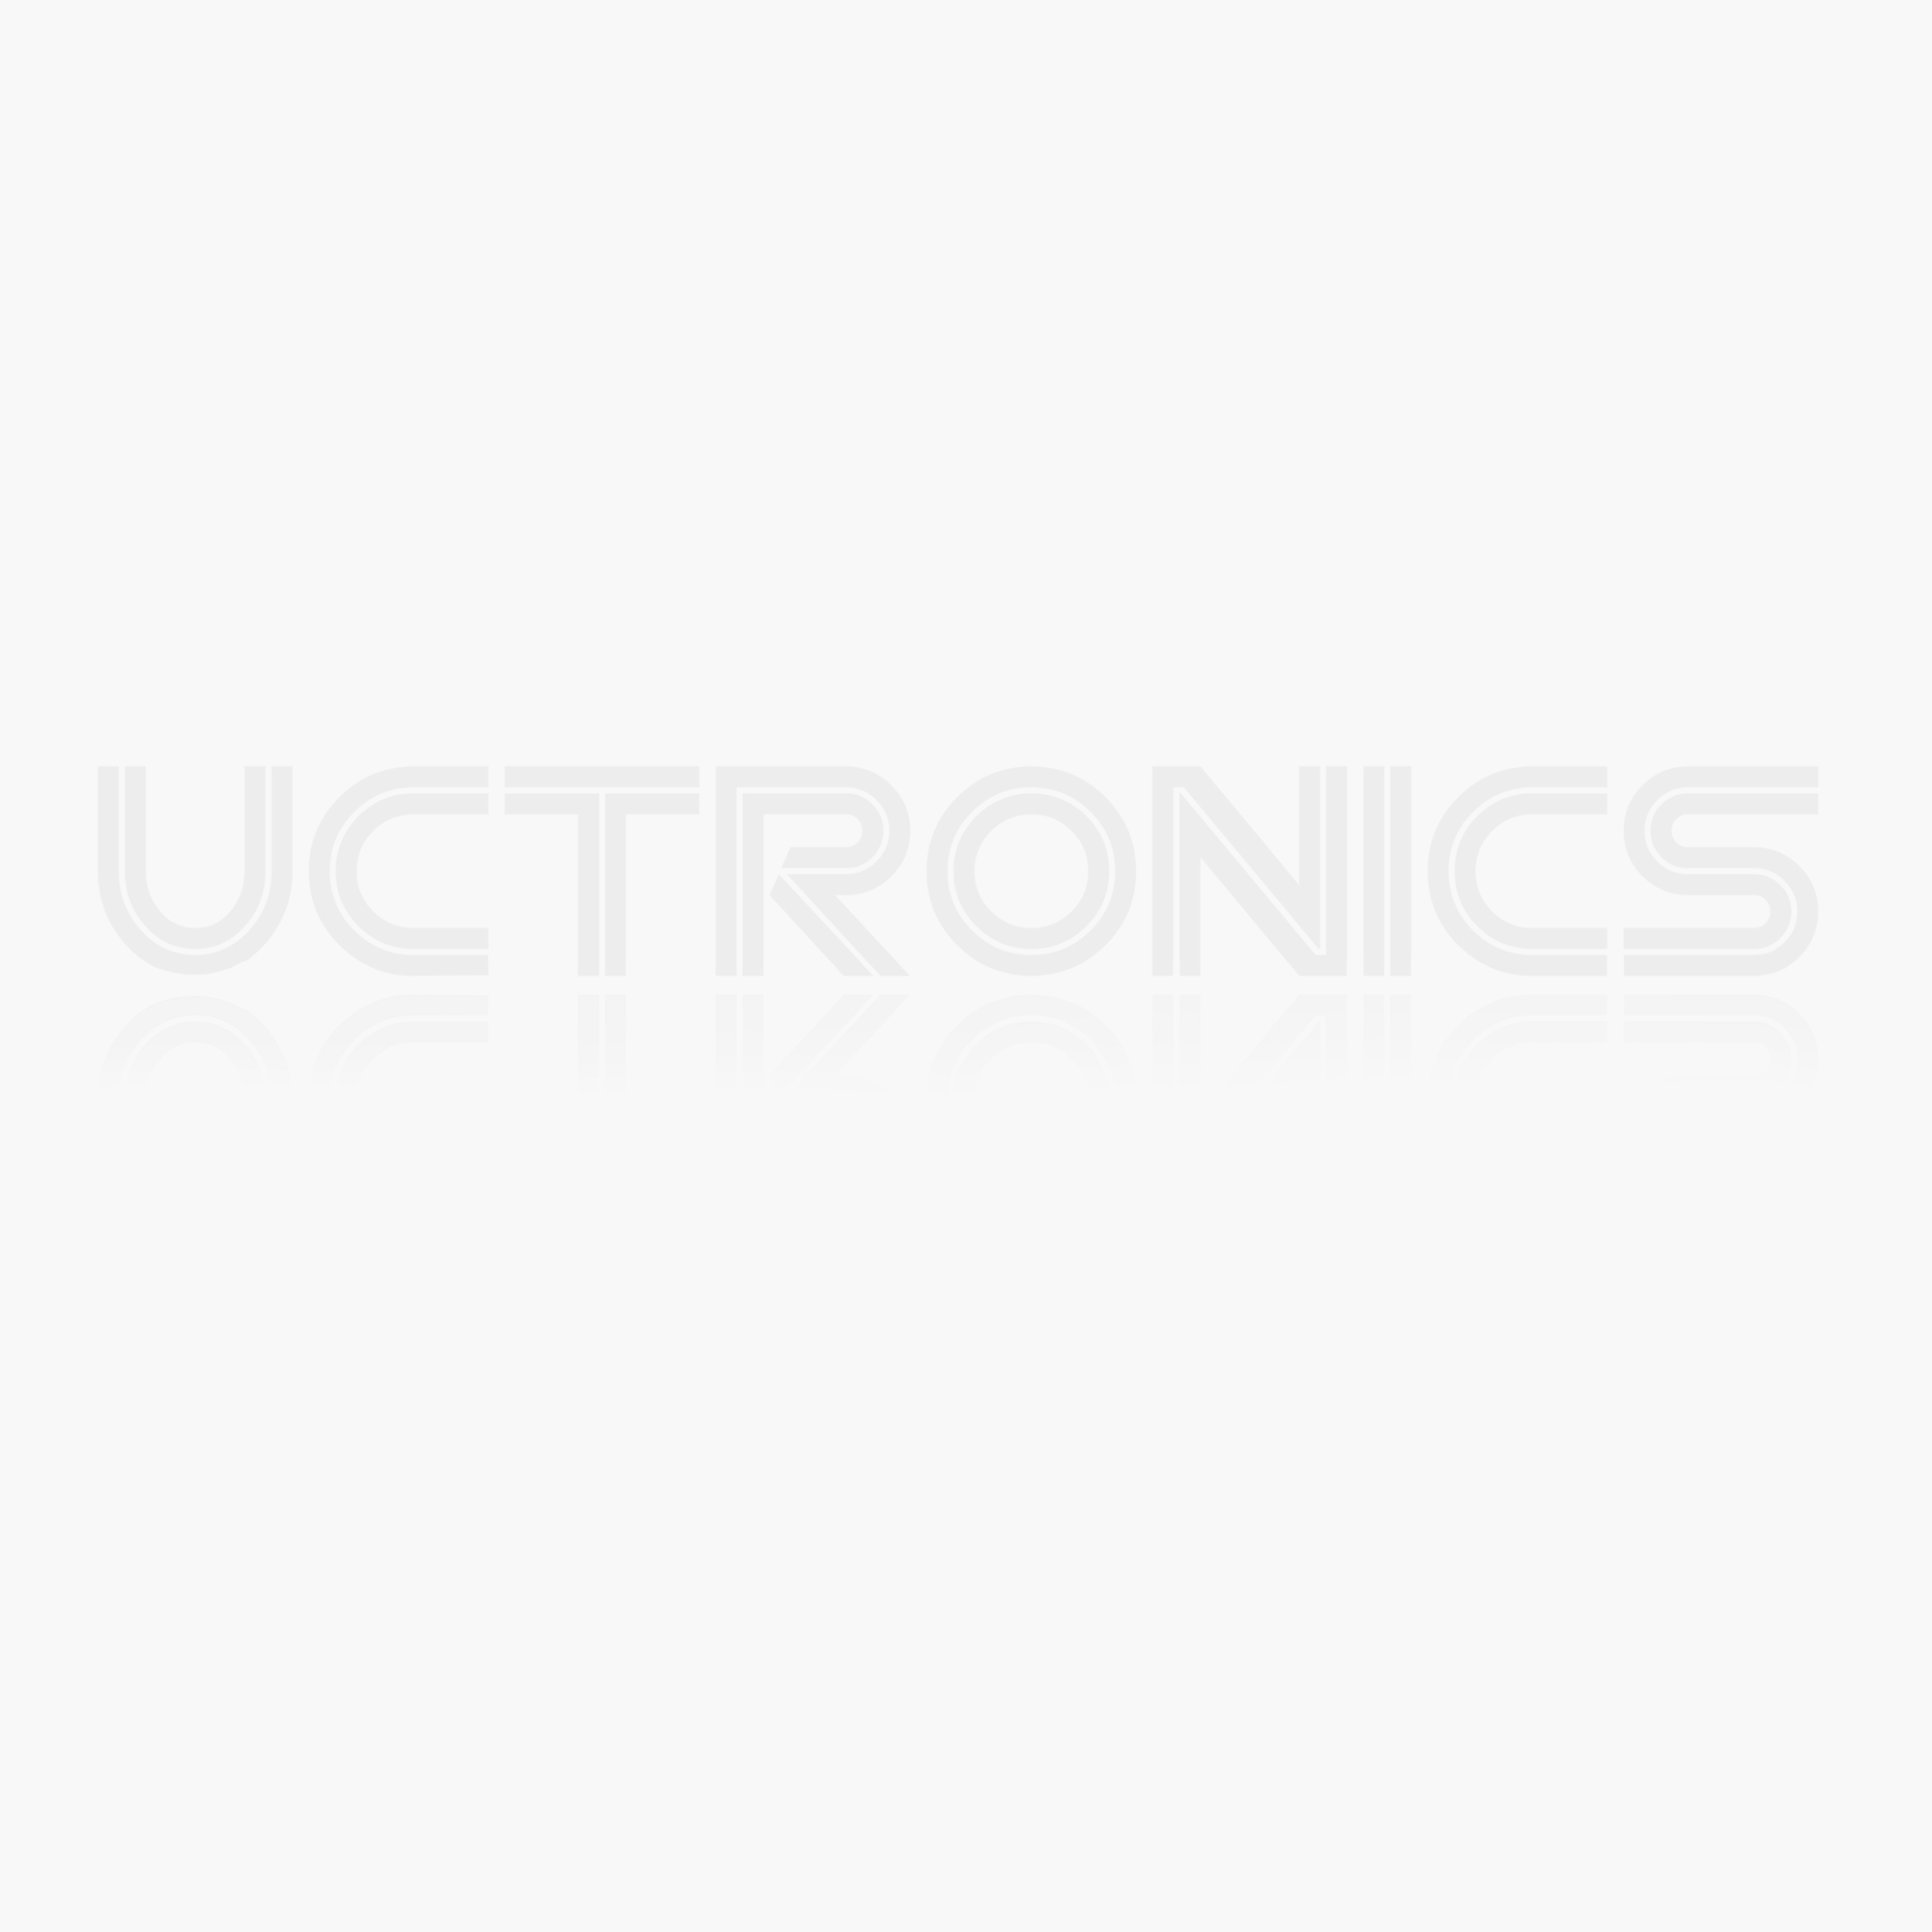 Uctronics Wholesale For Electronics Arduino And